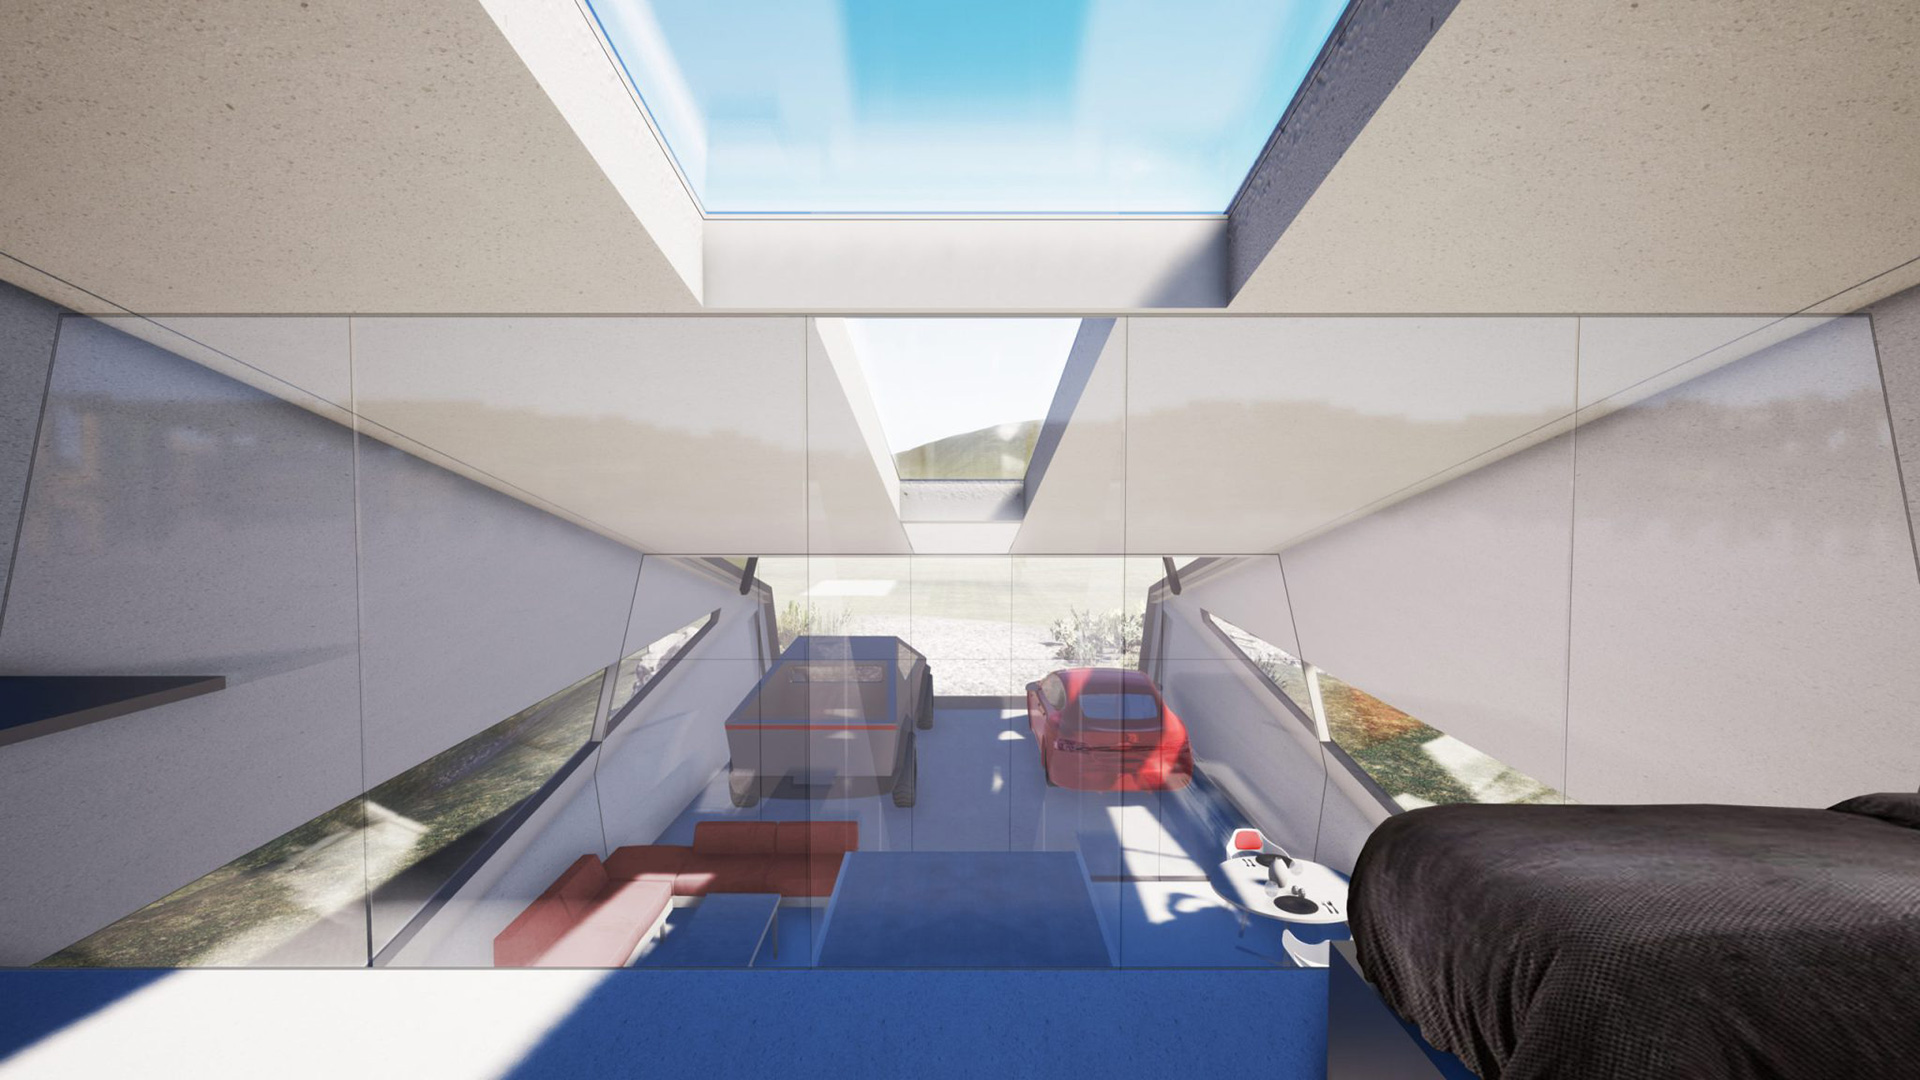 The Cybunker also has a loft that can serve as additional storage area | Cybunker |Lars Büro | STIRworld